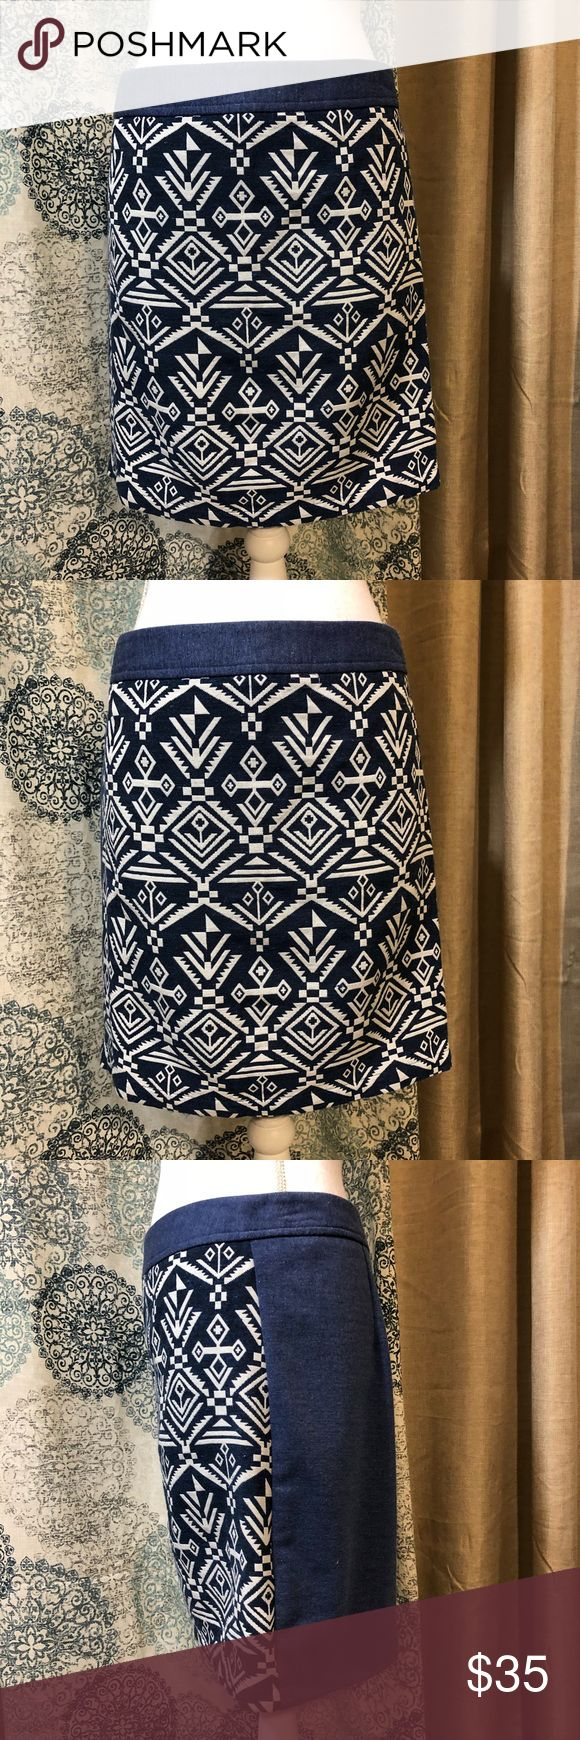 """Pixley Stitch Fix Tribal Blue Mini Skirt Pixley Stitch Fix tribal print skirt. Straight style. Materials Self 65% Cotton, 35% Polyester. Contrast 95% Polyester, 5% Spandex.   Size M  Measurements (laid flat)  Waist 15.5""""  Length 18""""  Condition  Excellent condition preowned with no flaws noted. Pixley Skirts Mini"""